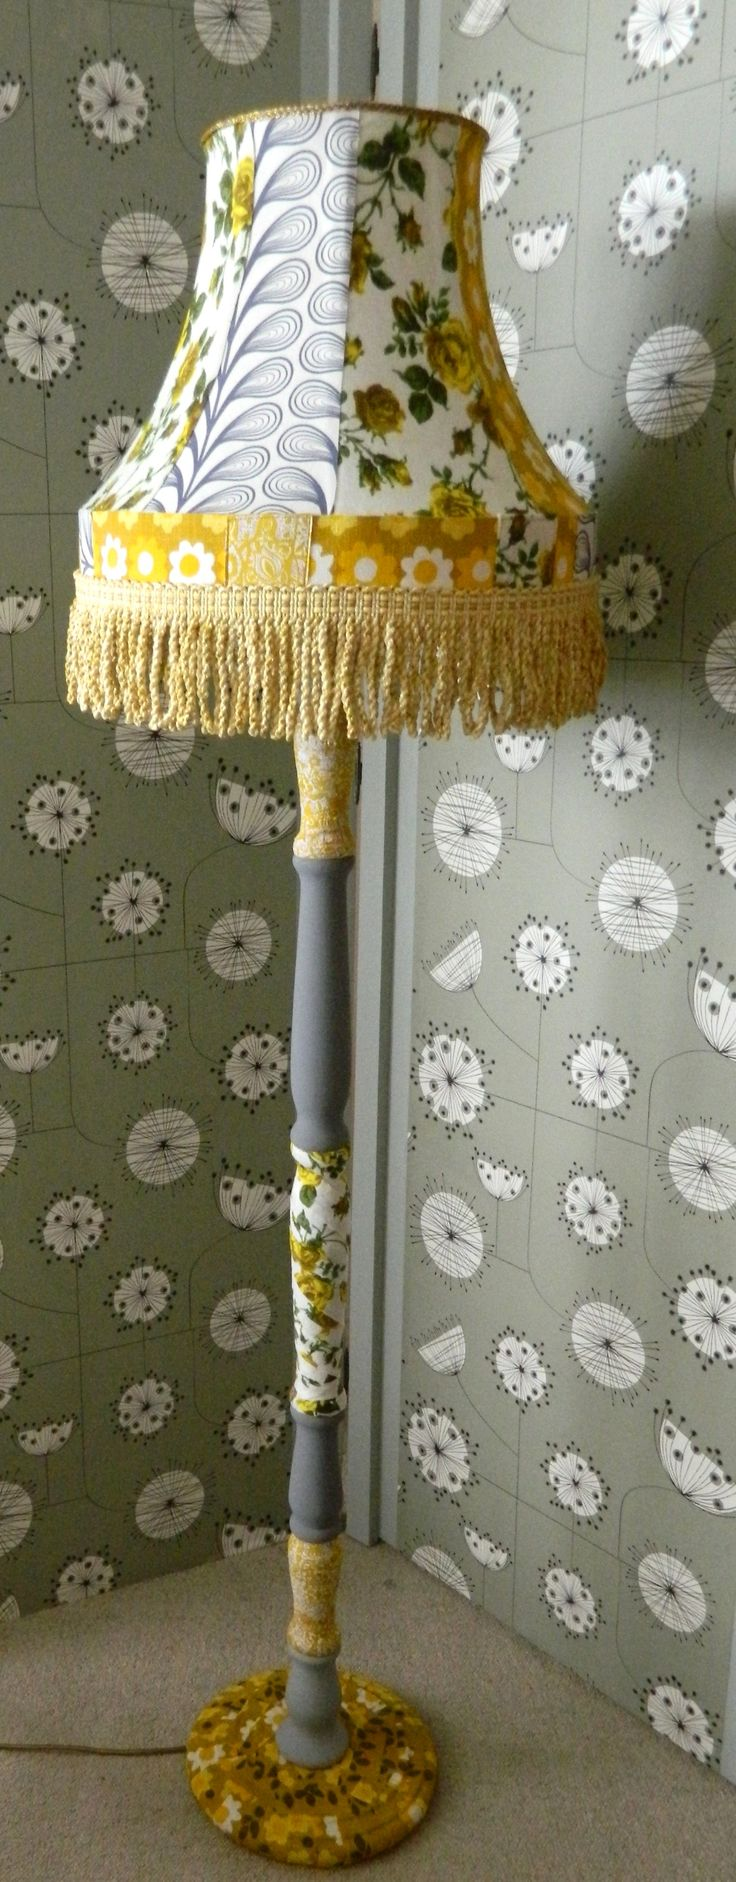 Up-cycled standard lamp using vintage fabrics and trim by clarabella christie